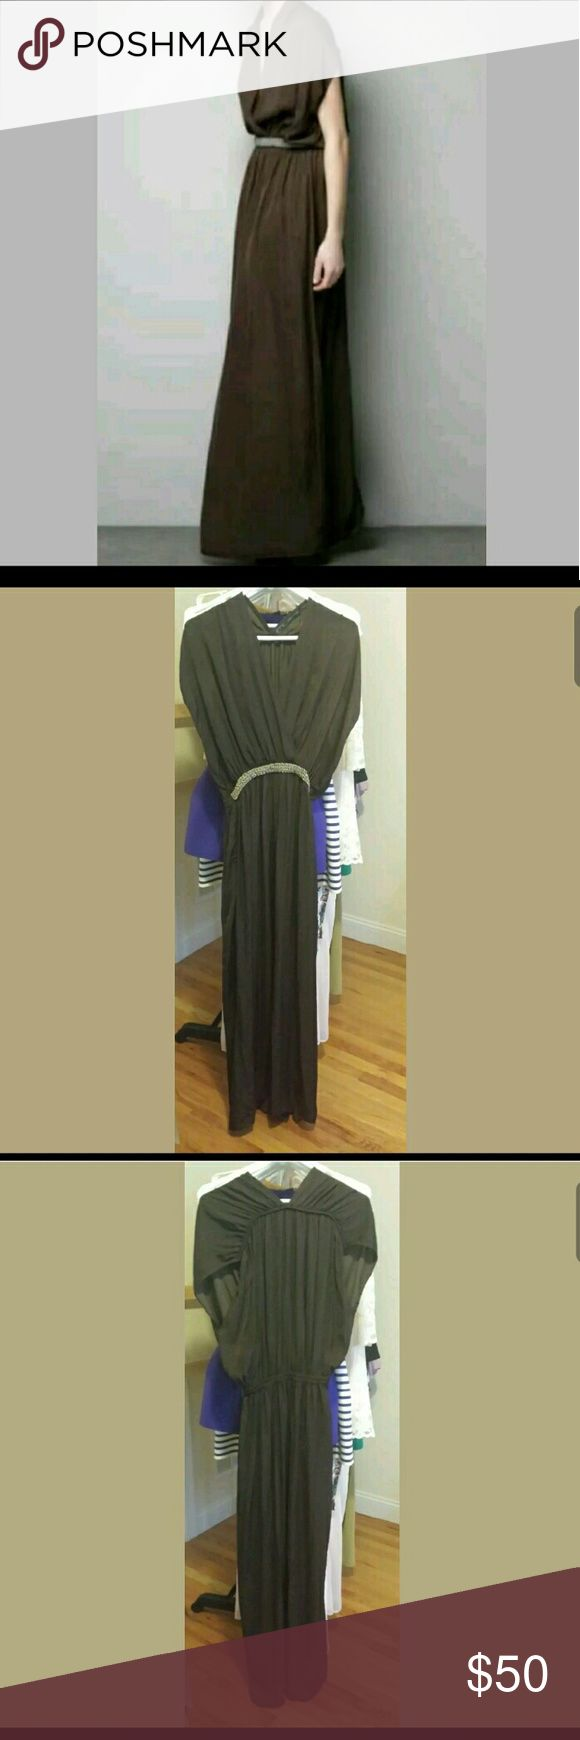 Zara Brown Maxi Dress Sz S/M Never worn.  Excellent condition.  Size S but can fit u to a M.  Loose fit...runs a bit large for typical Zara. Zara Dresses Maxi